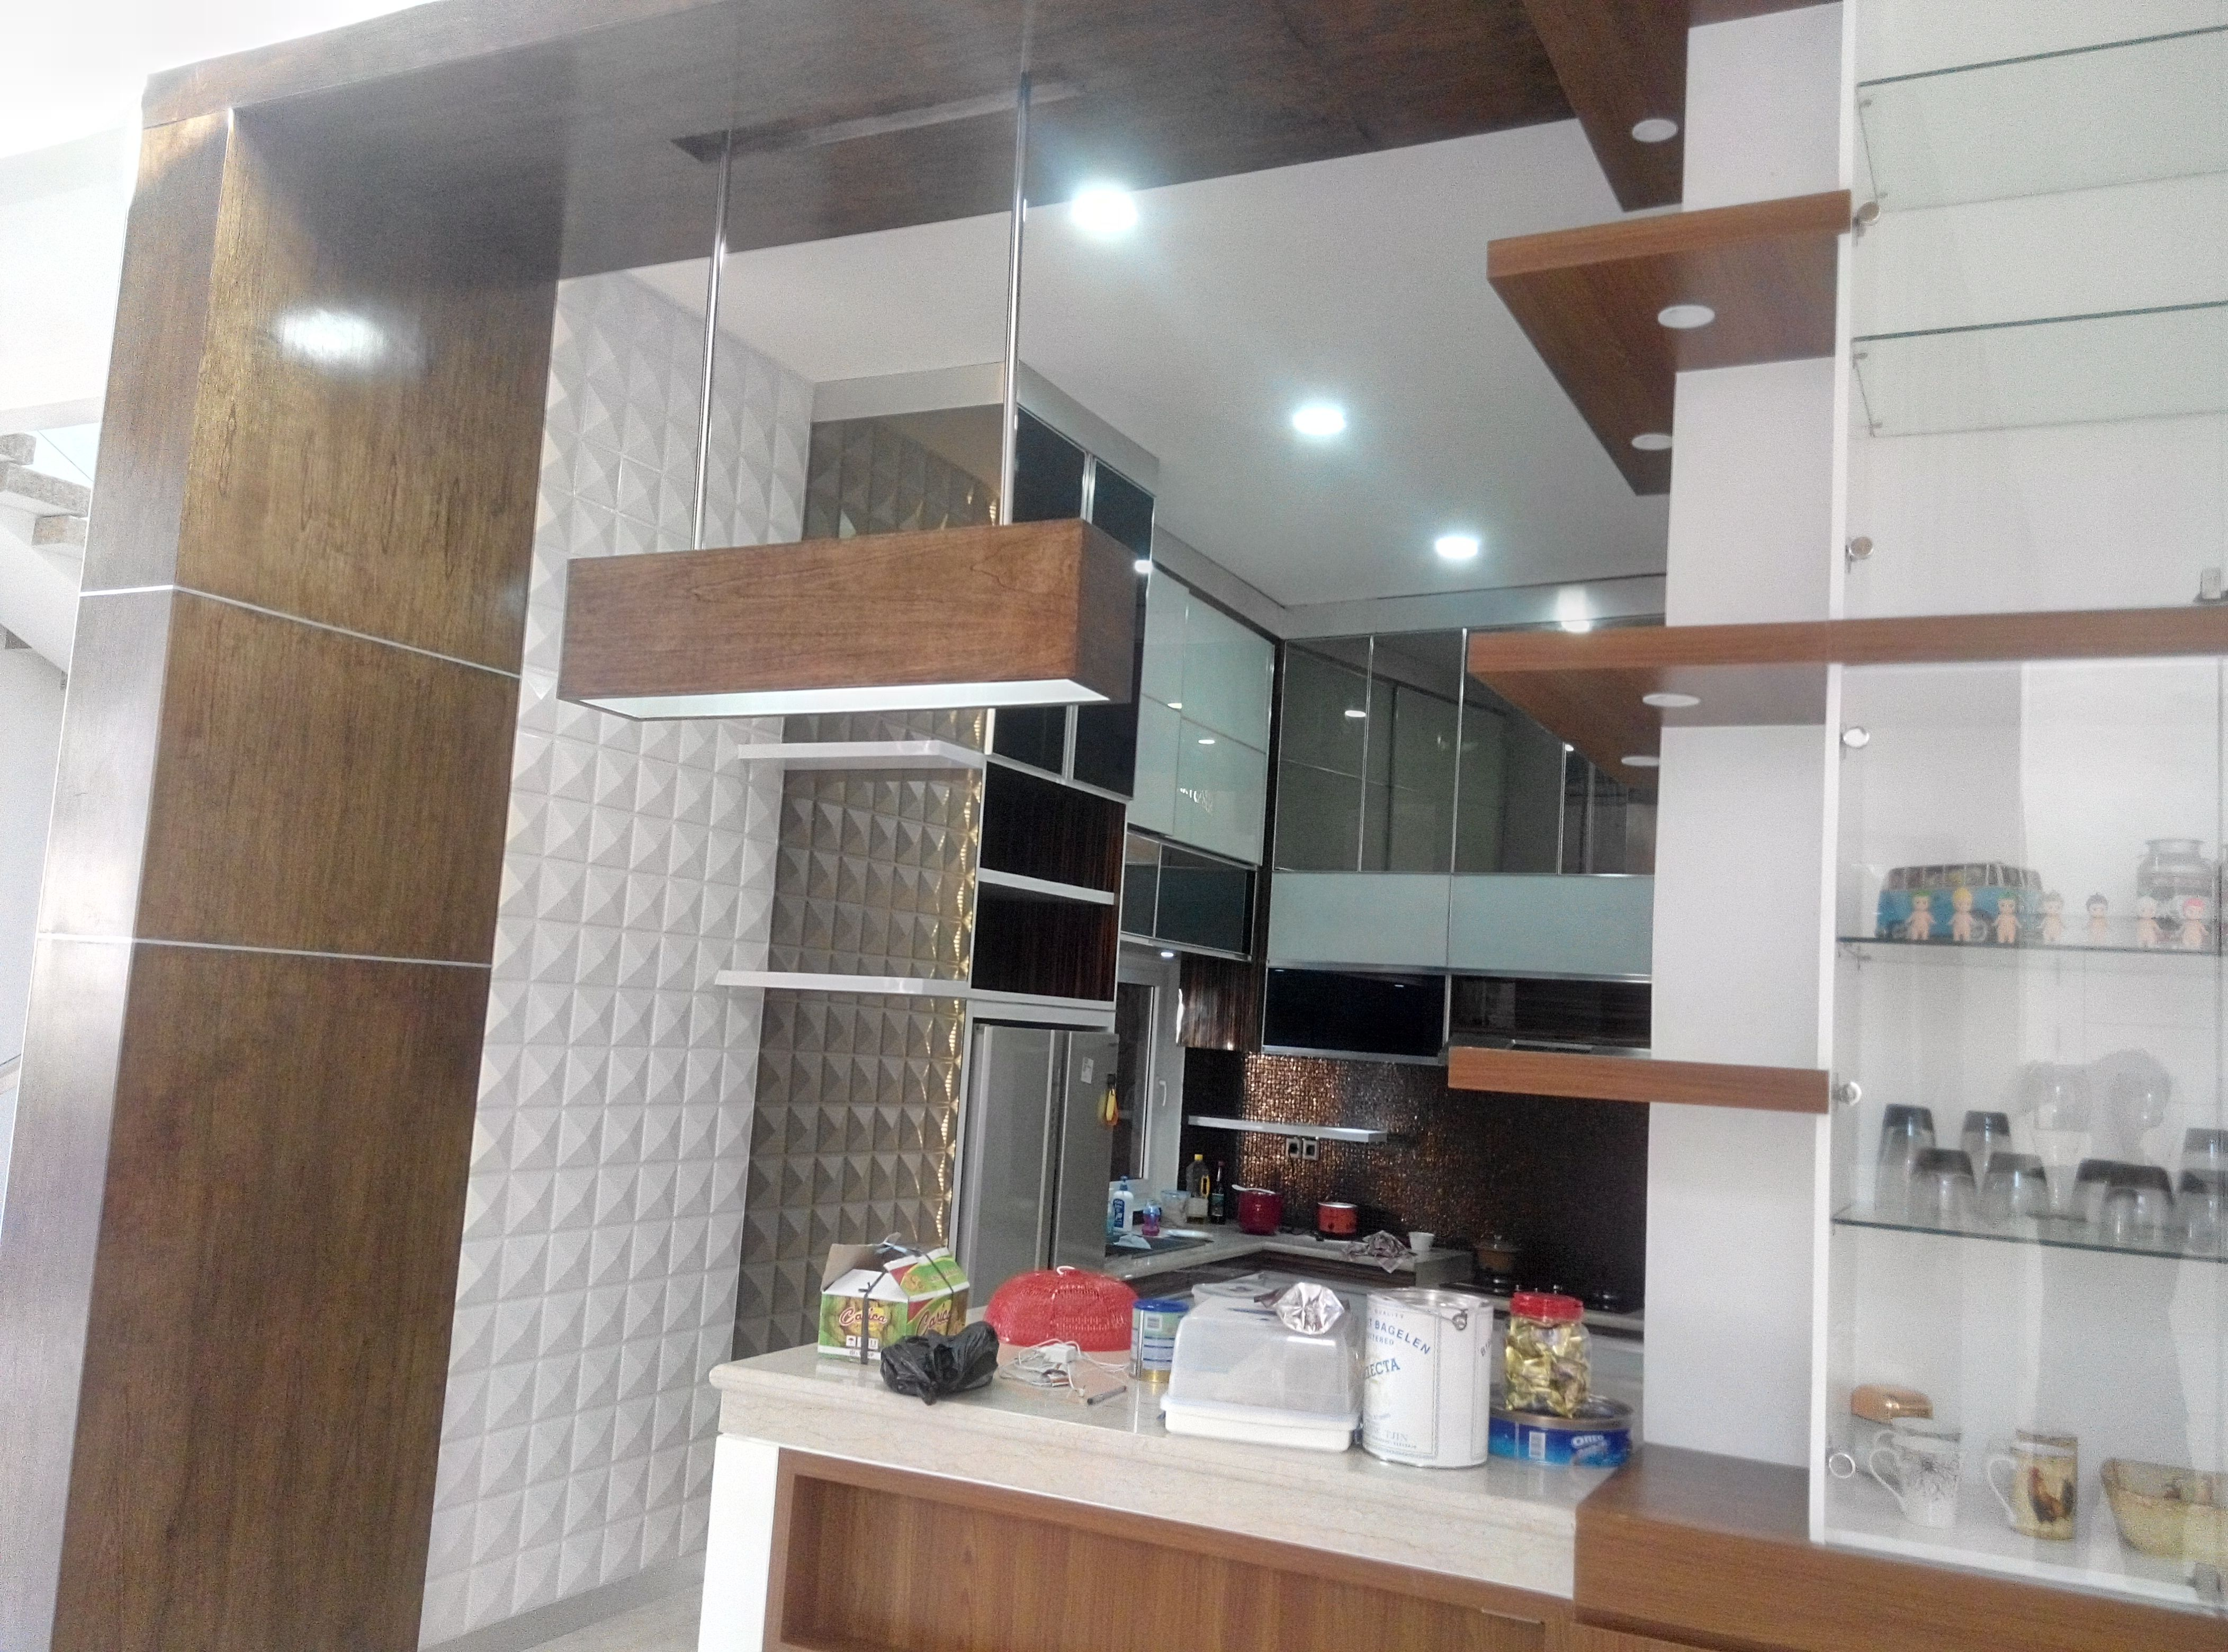 Minimalis and luxury kitchen set design and build by grasitama interior follow our ig